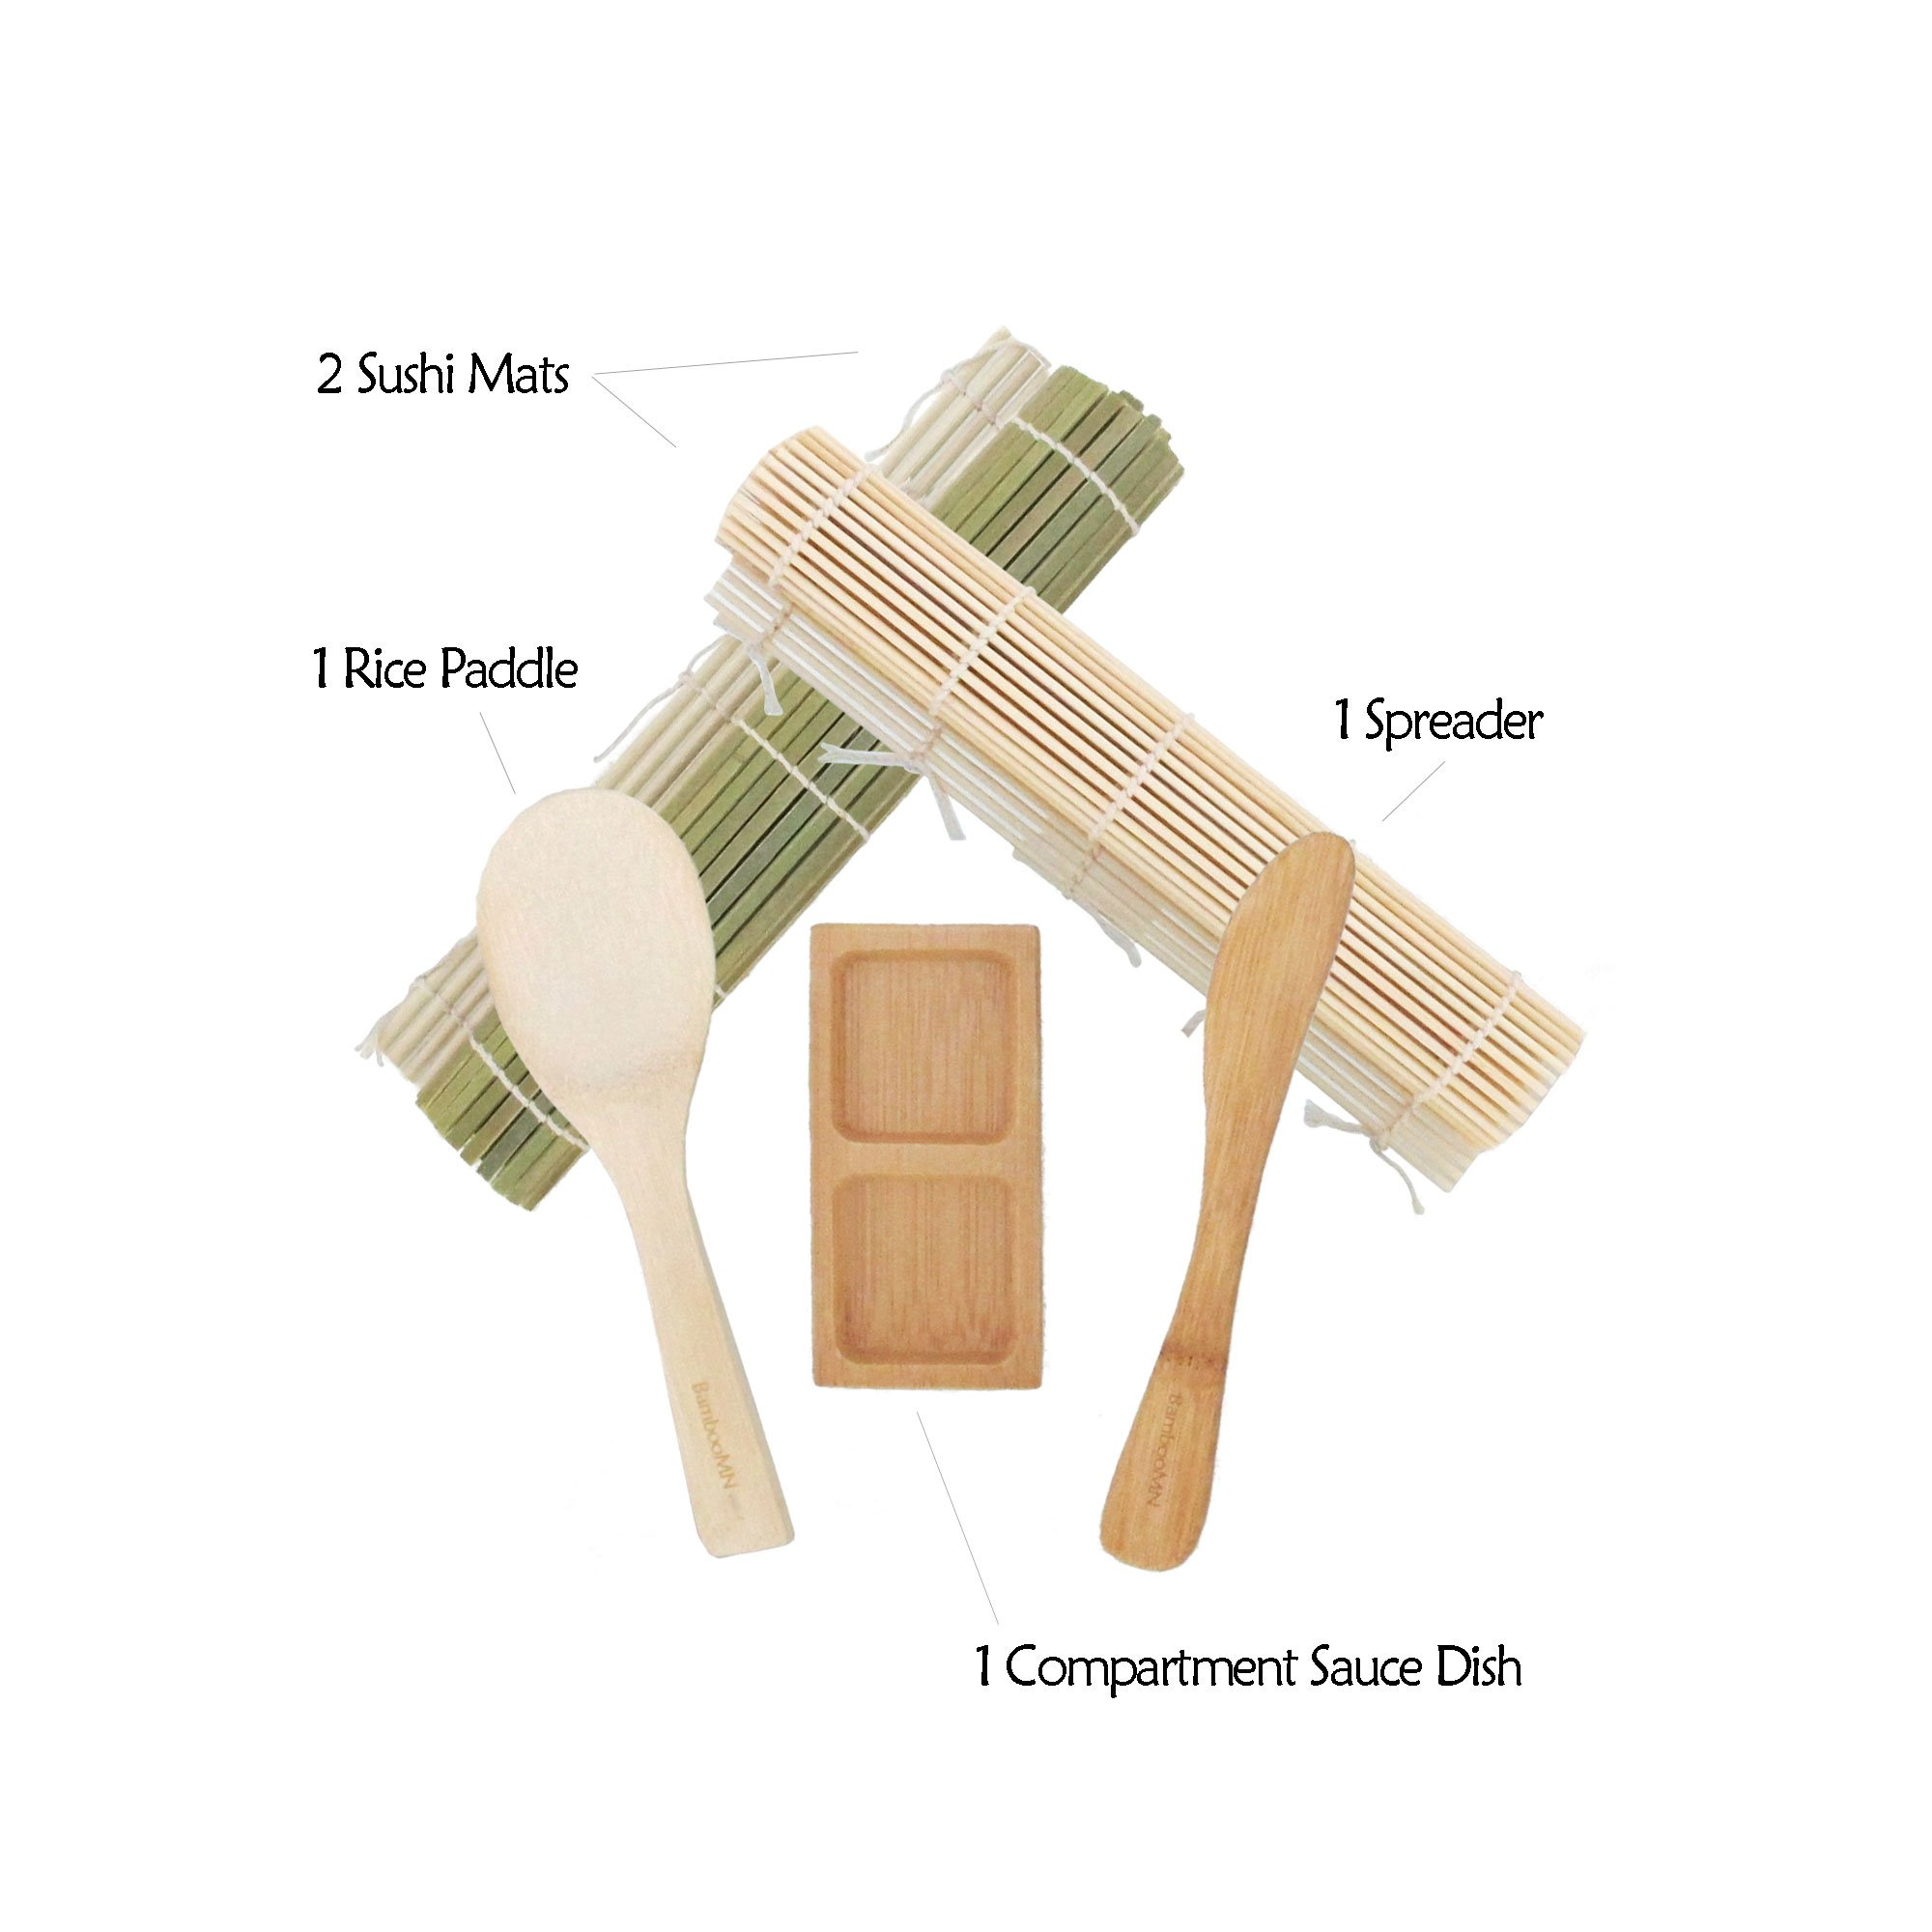 BambooMN Deluxe Sushi Maker Kit 2 SETS of 2x Rolling Mats, 1x Rice Paddle, 1x Spreader, 1x Compartment Sauce Dish | 100% Bamboo Mats and Utensils by BambooMN (Image #3)